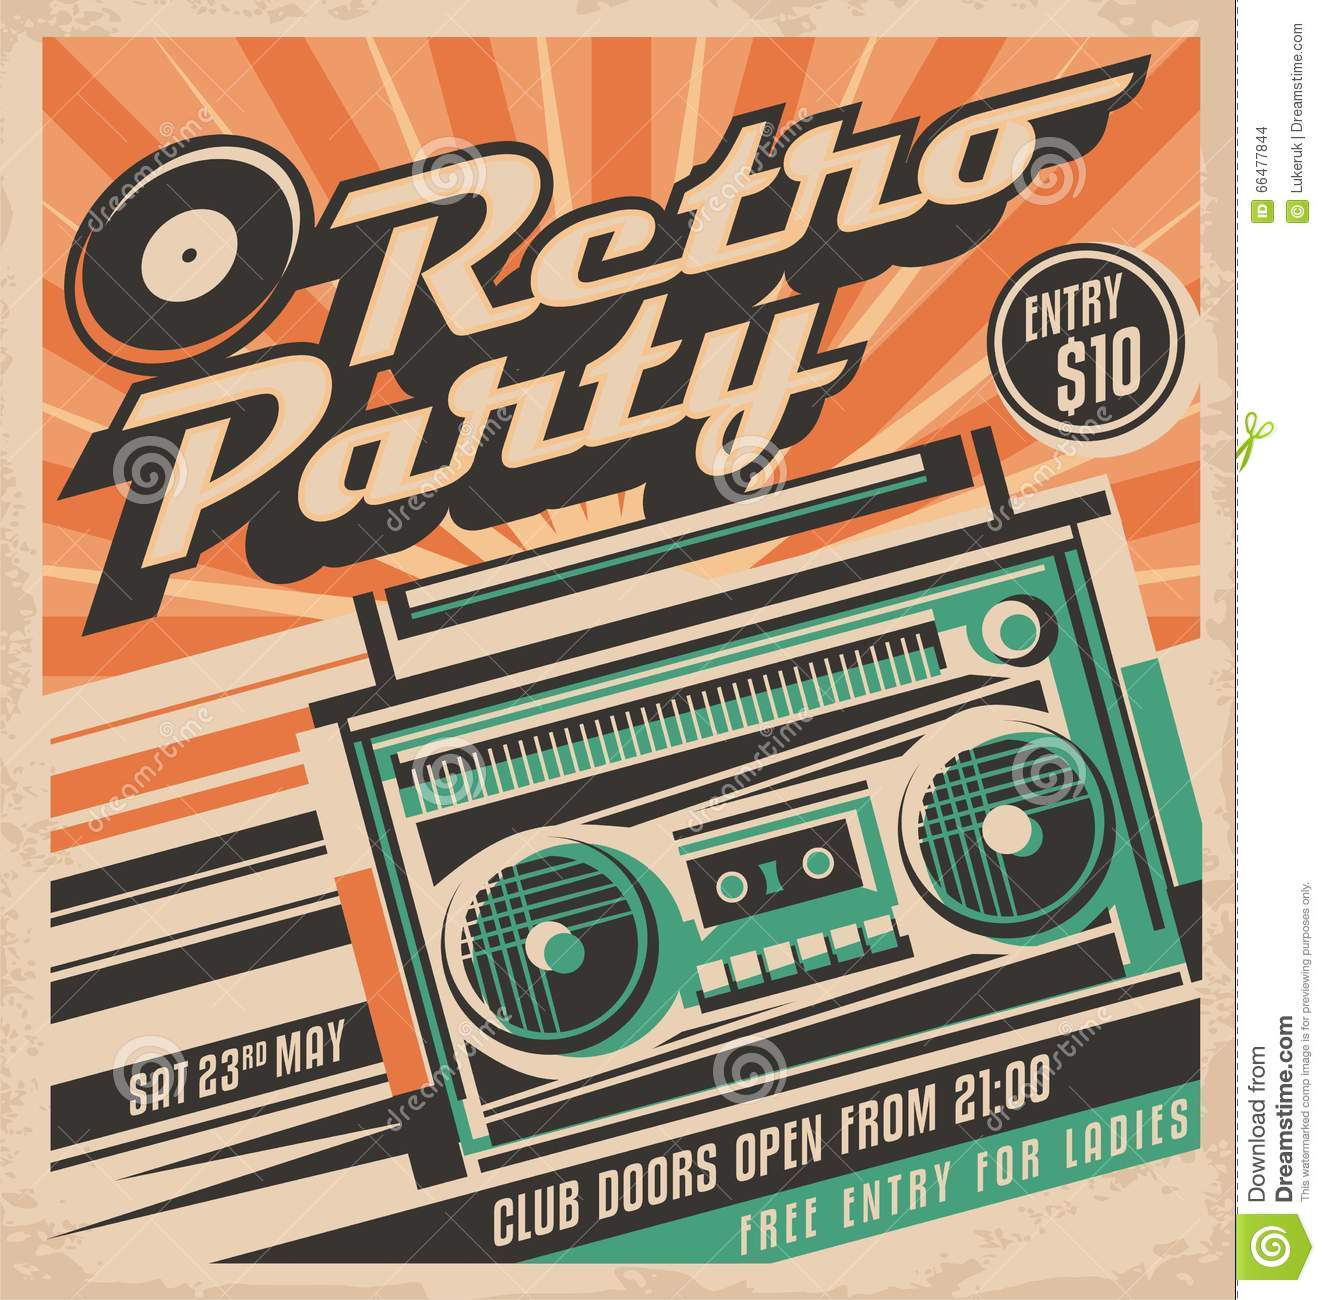 80s poster design - Retro Party Poster Design Concept Stock Images